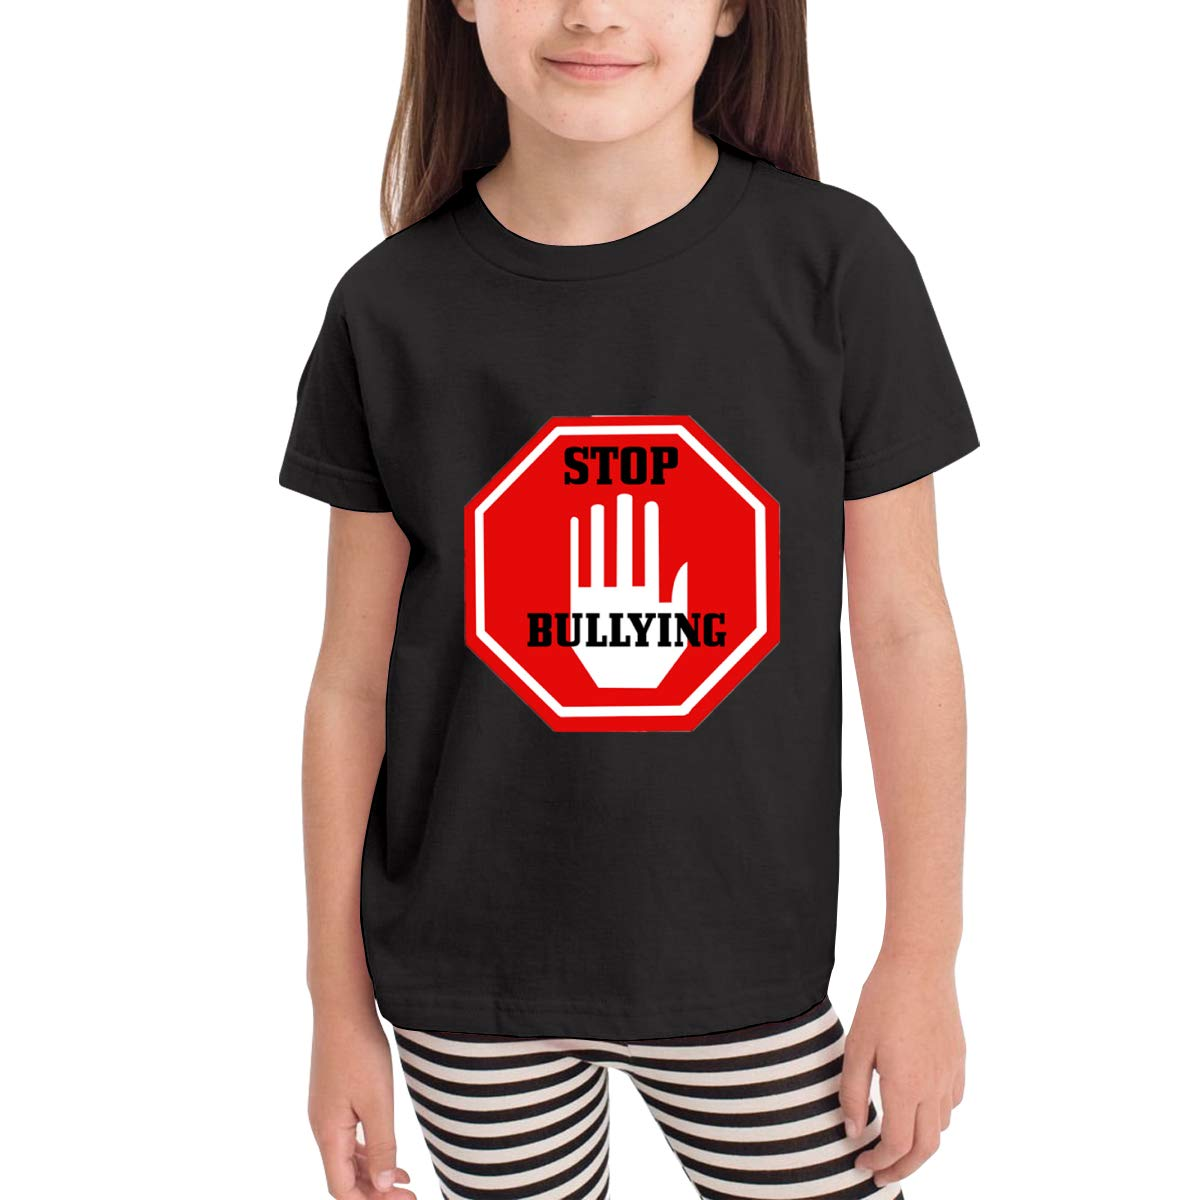 Stop Bullying No Bullying Sign 100/% Cotton Toddler Baby Boys Girls Kids Short Sleeve T Shirt Top Tee Clothes 2-6 T